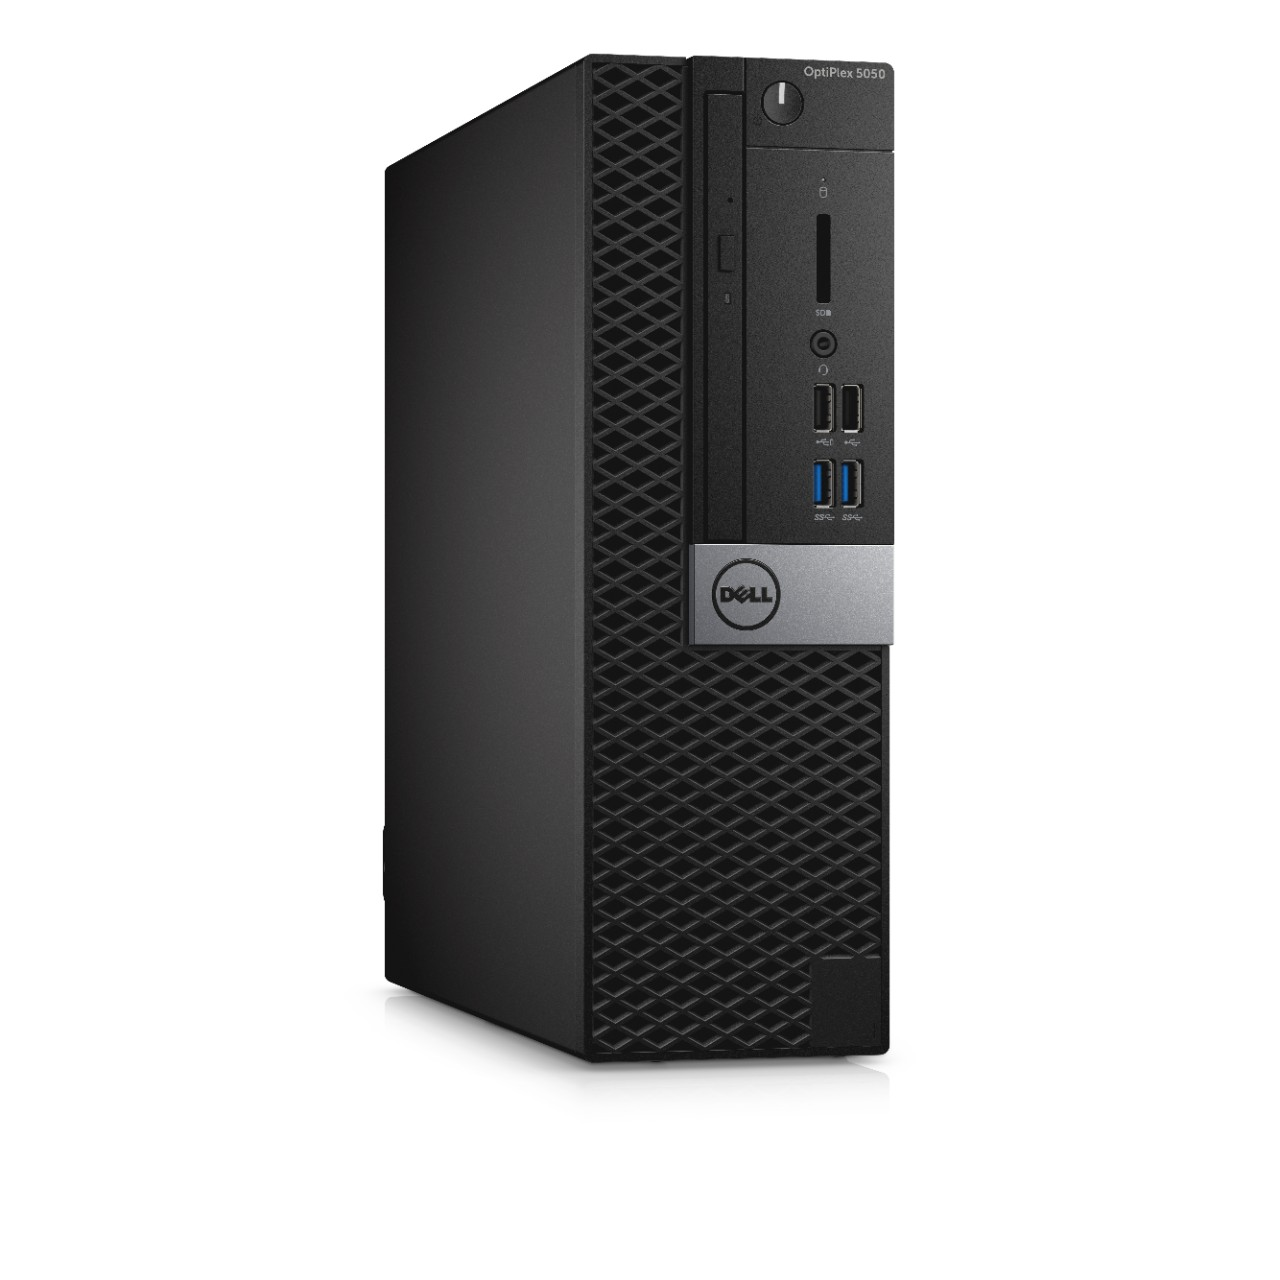 Dell PC Optiplex 5050 SF i3-6100/4G/1TB/DP/HDMI/W10P/5rNBD PrSu